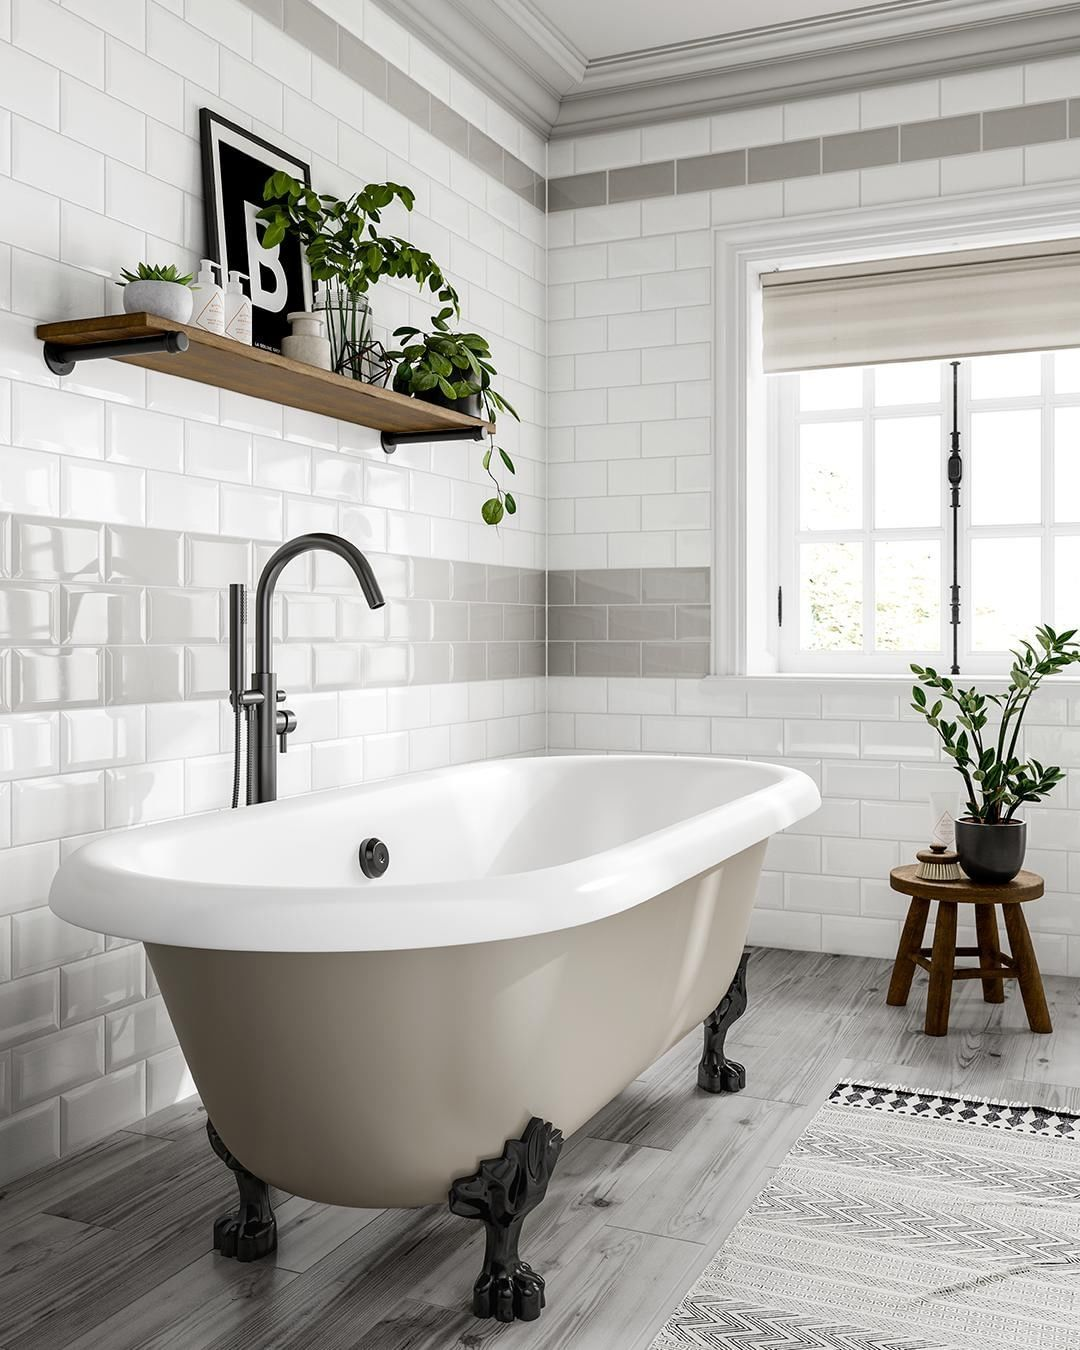 Tile Giant On Instagram Mix Up Our Metro Tile Shades To Add Accent Colours To Your Walls How Would Metro Tiles White Brick Tiles Bathroom White Brick Tiles